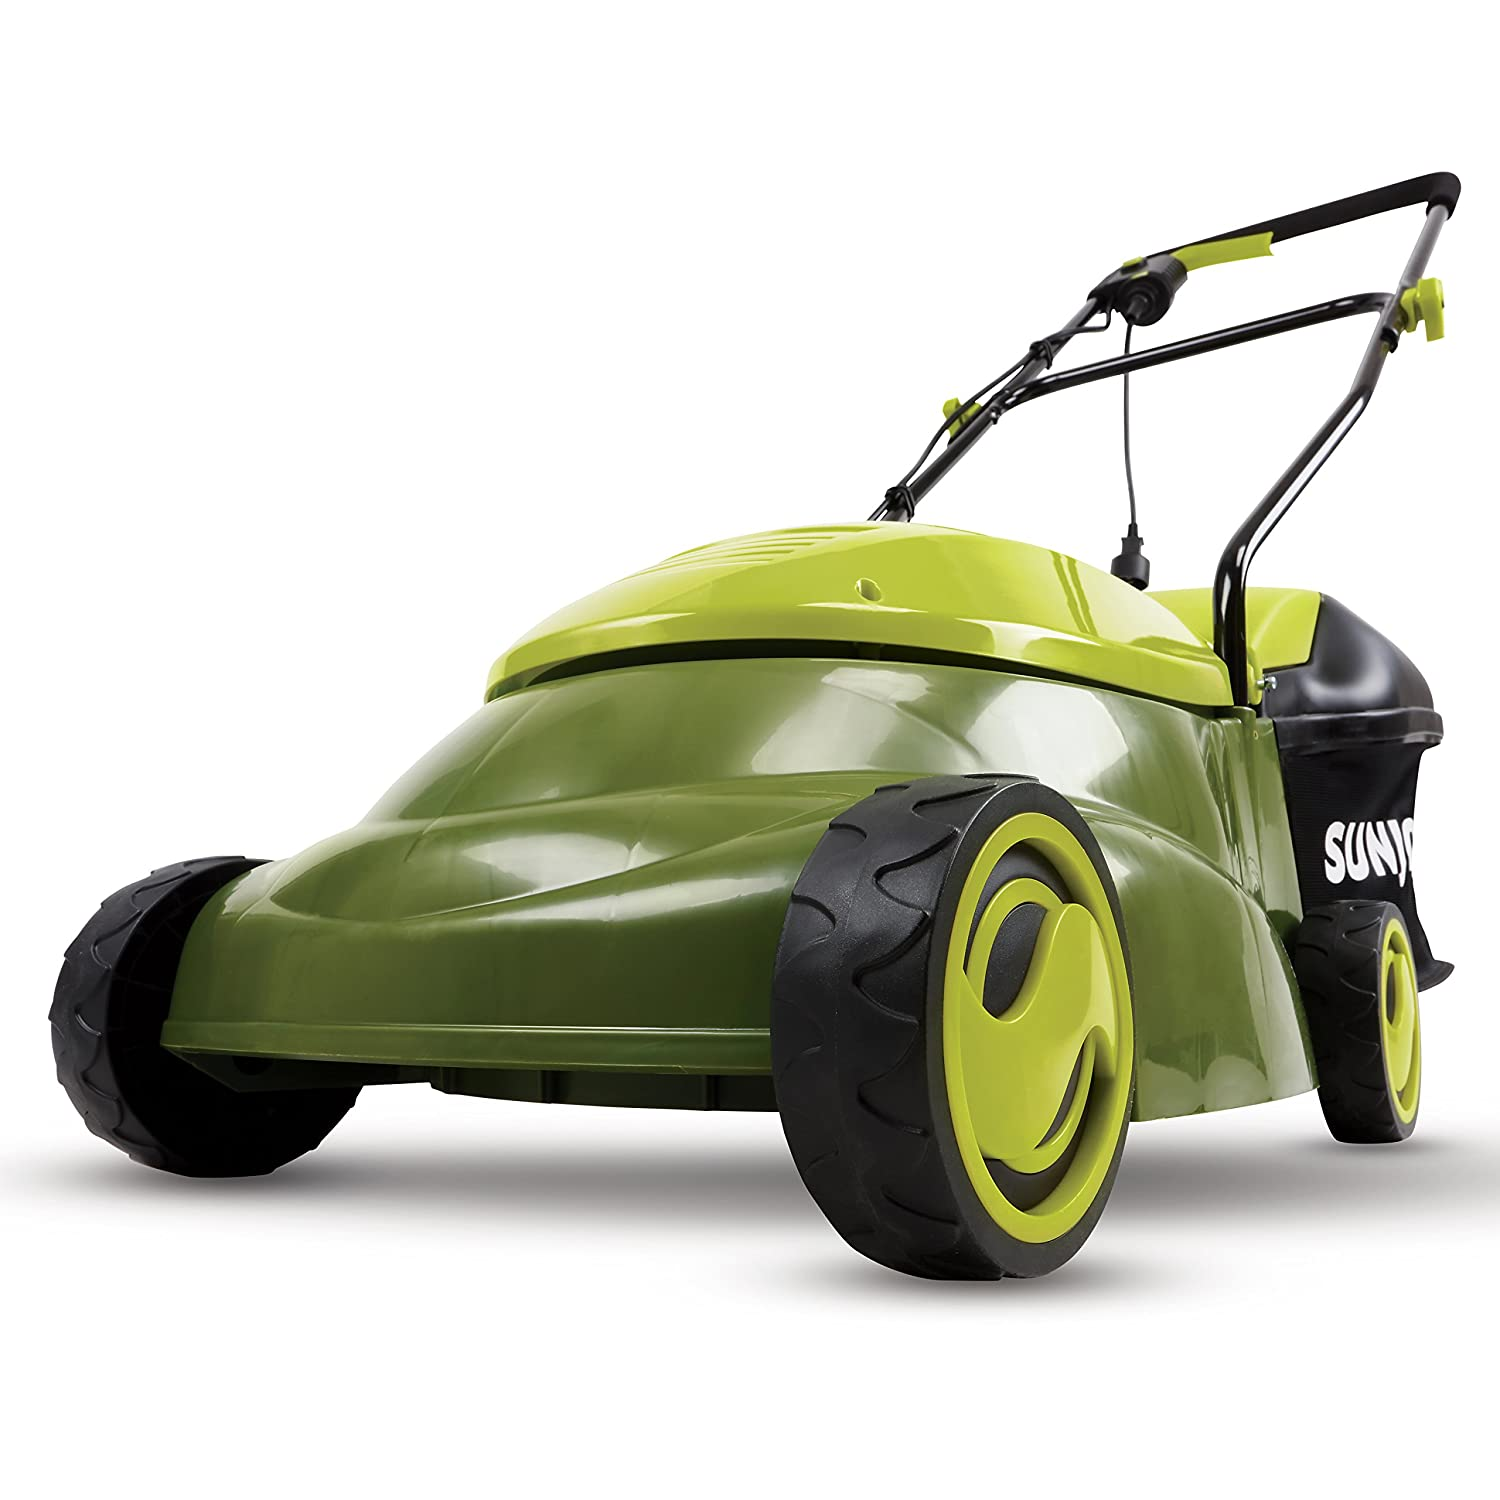 Best lawn mower -  Sun Joe MJ401E-SJB Mow Joe 14-Inch 12 Amp Electric Lawn Mower With Grass Bag